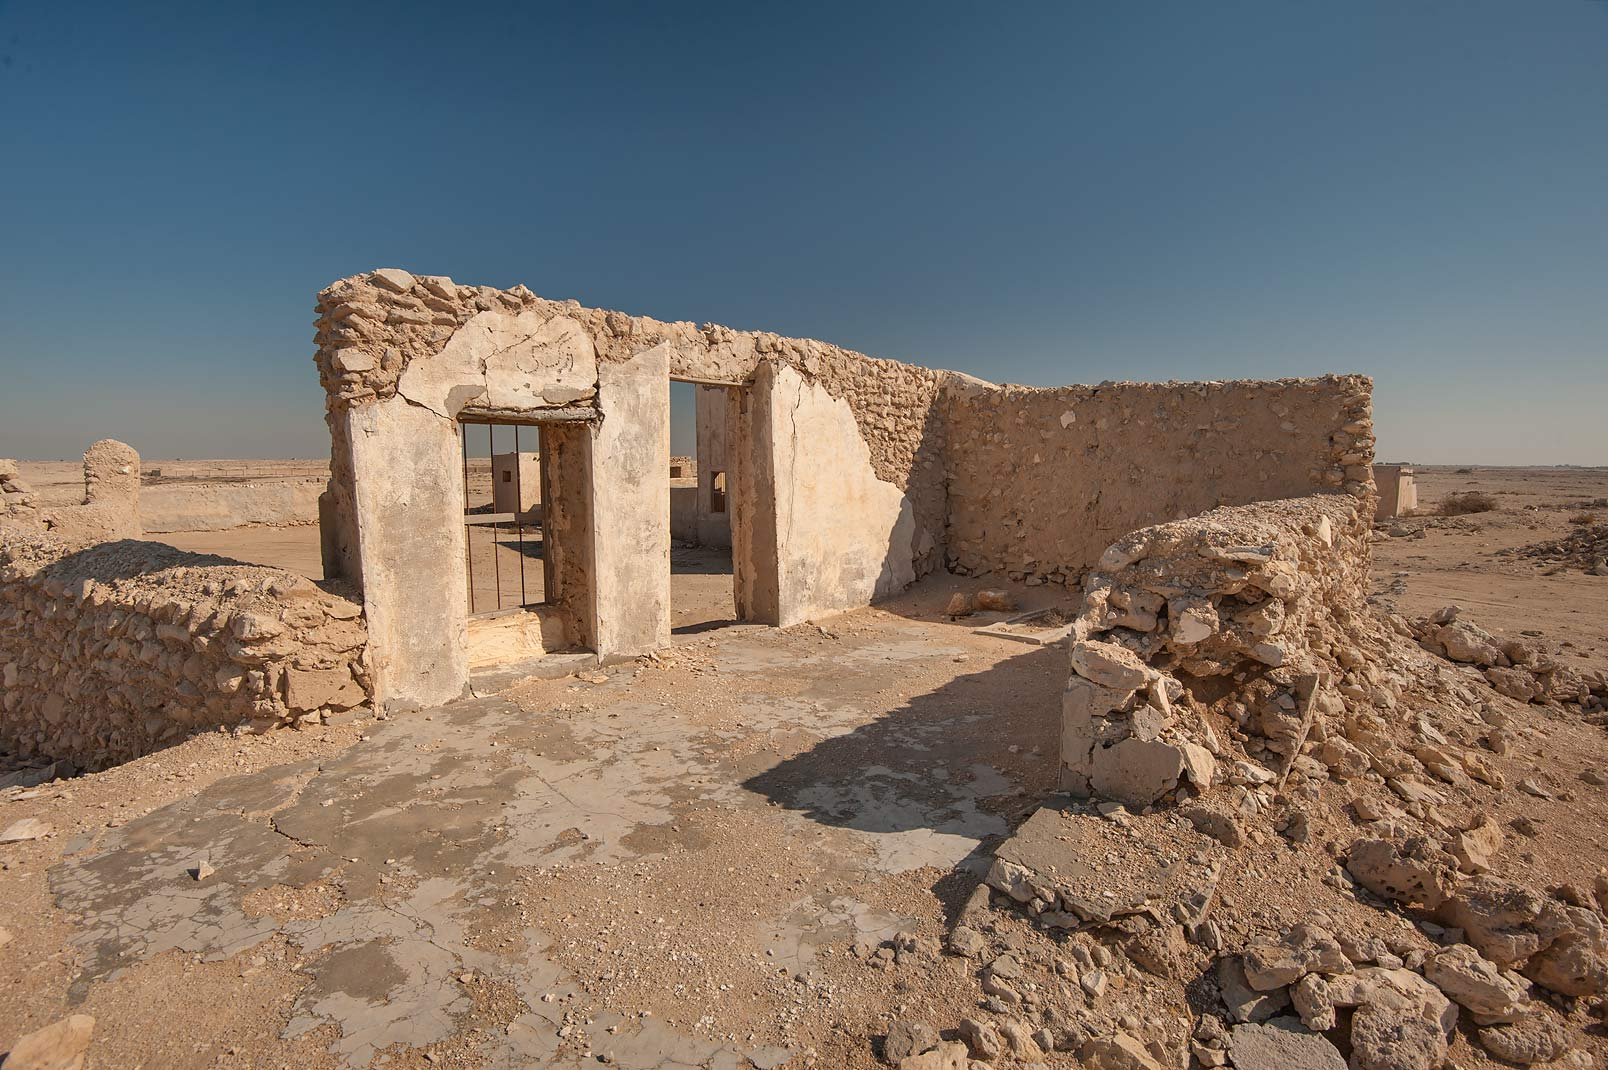 Stone walls in a village of Al Jumail (Jumayl) west of Ruwais. Northern Qatar